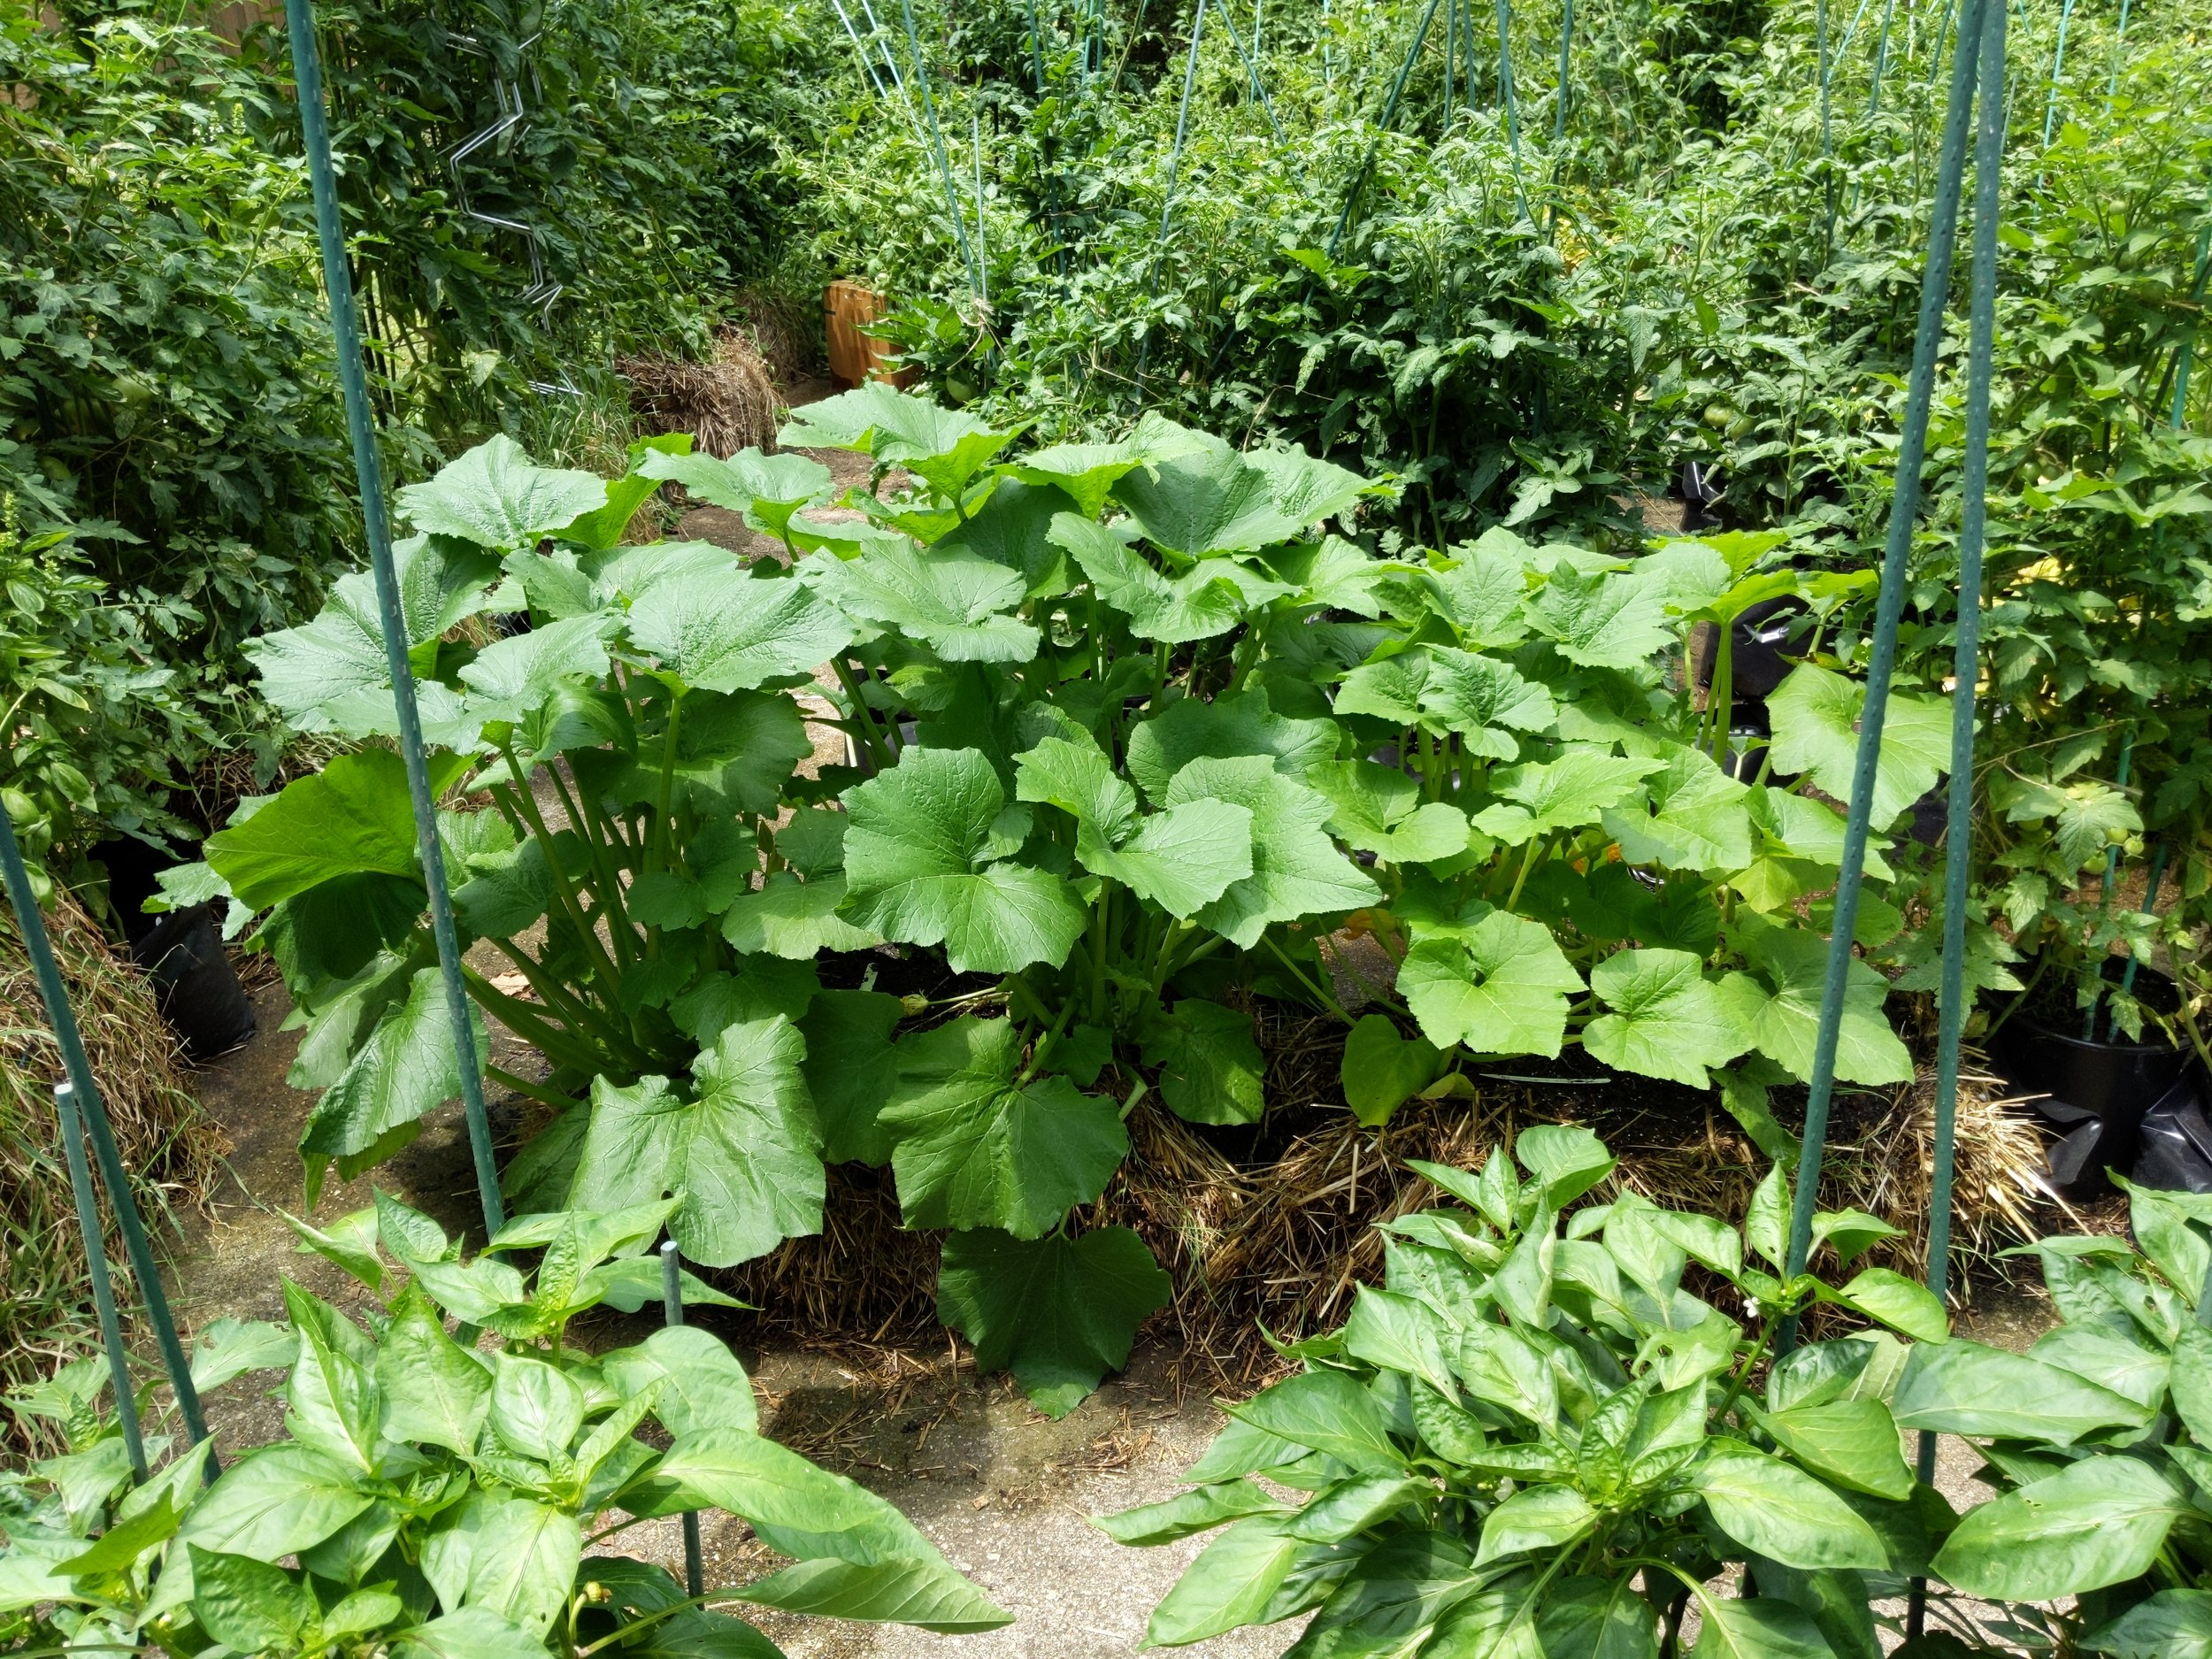 Summer squash growing well in straw bales